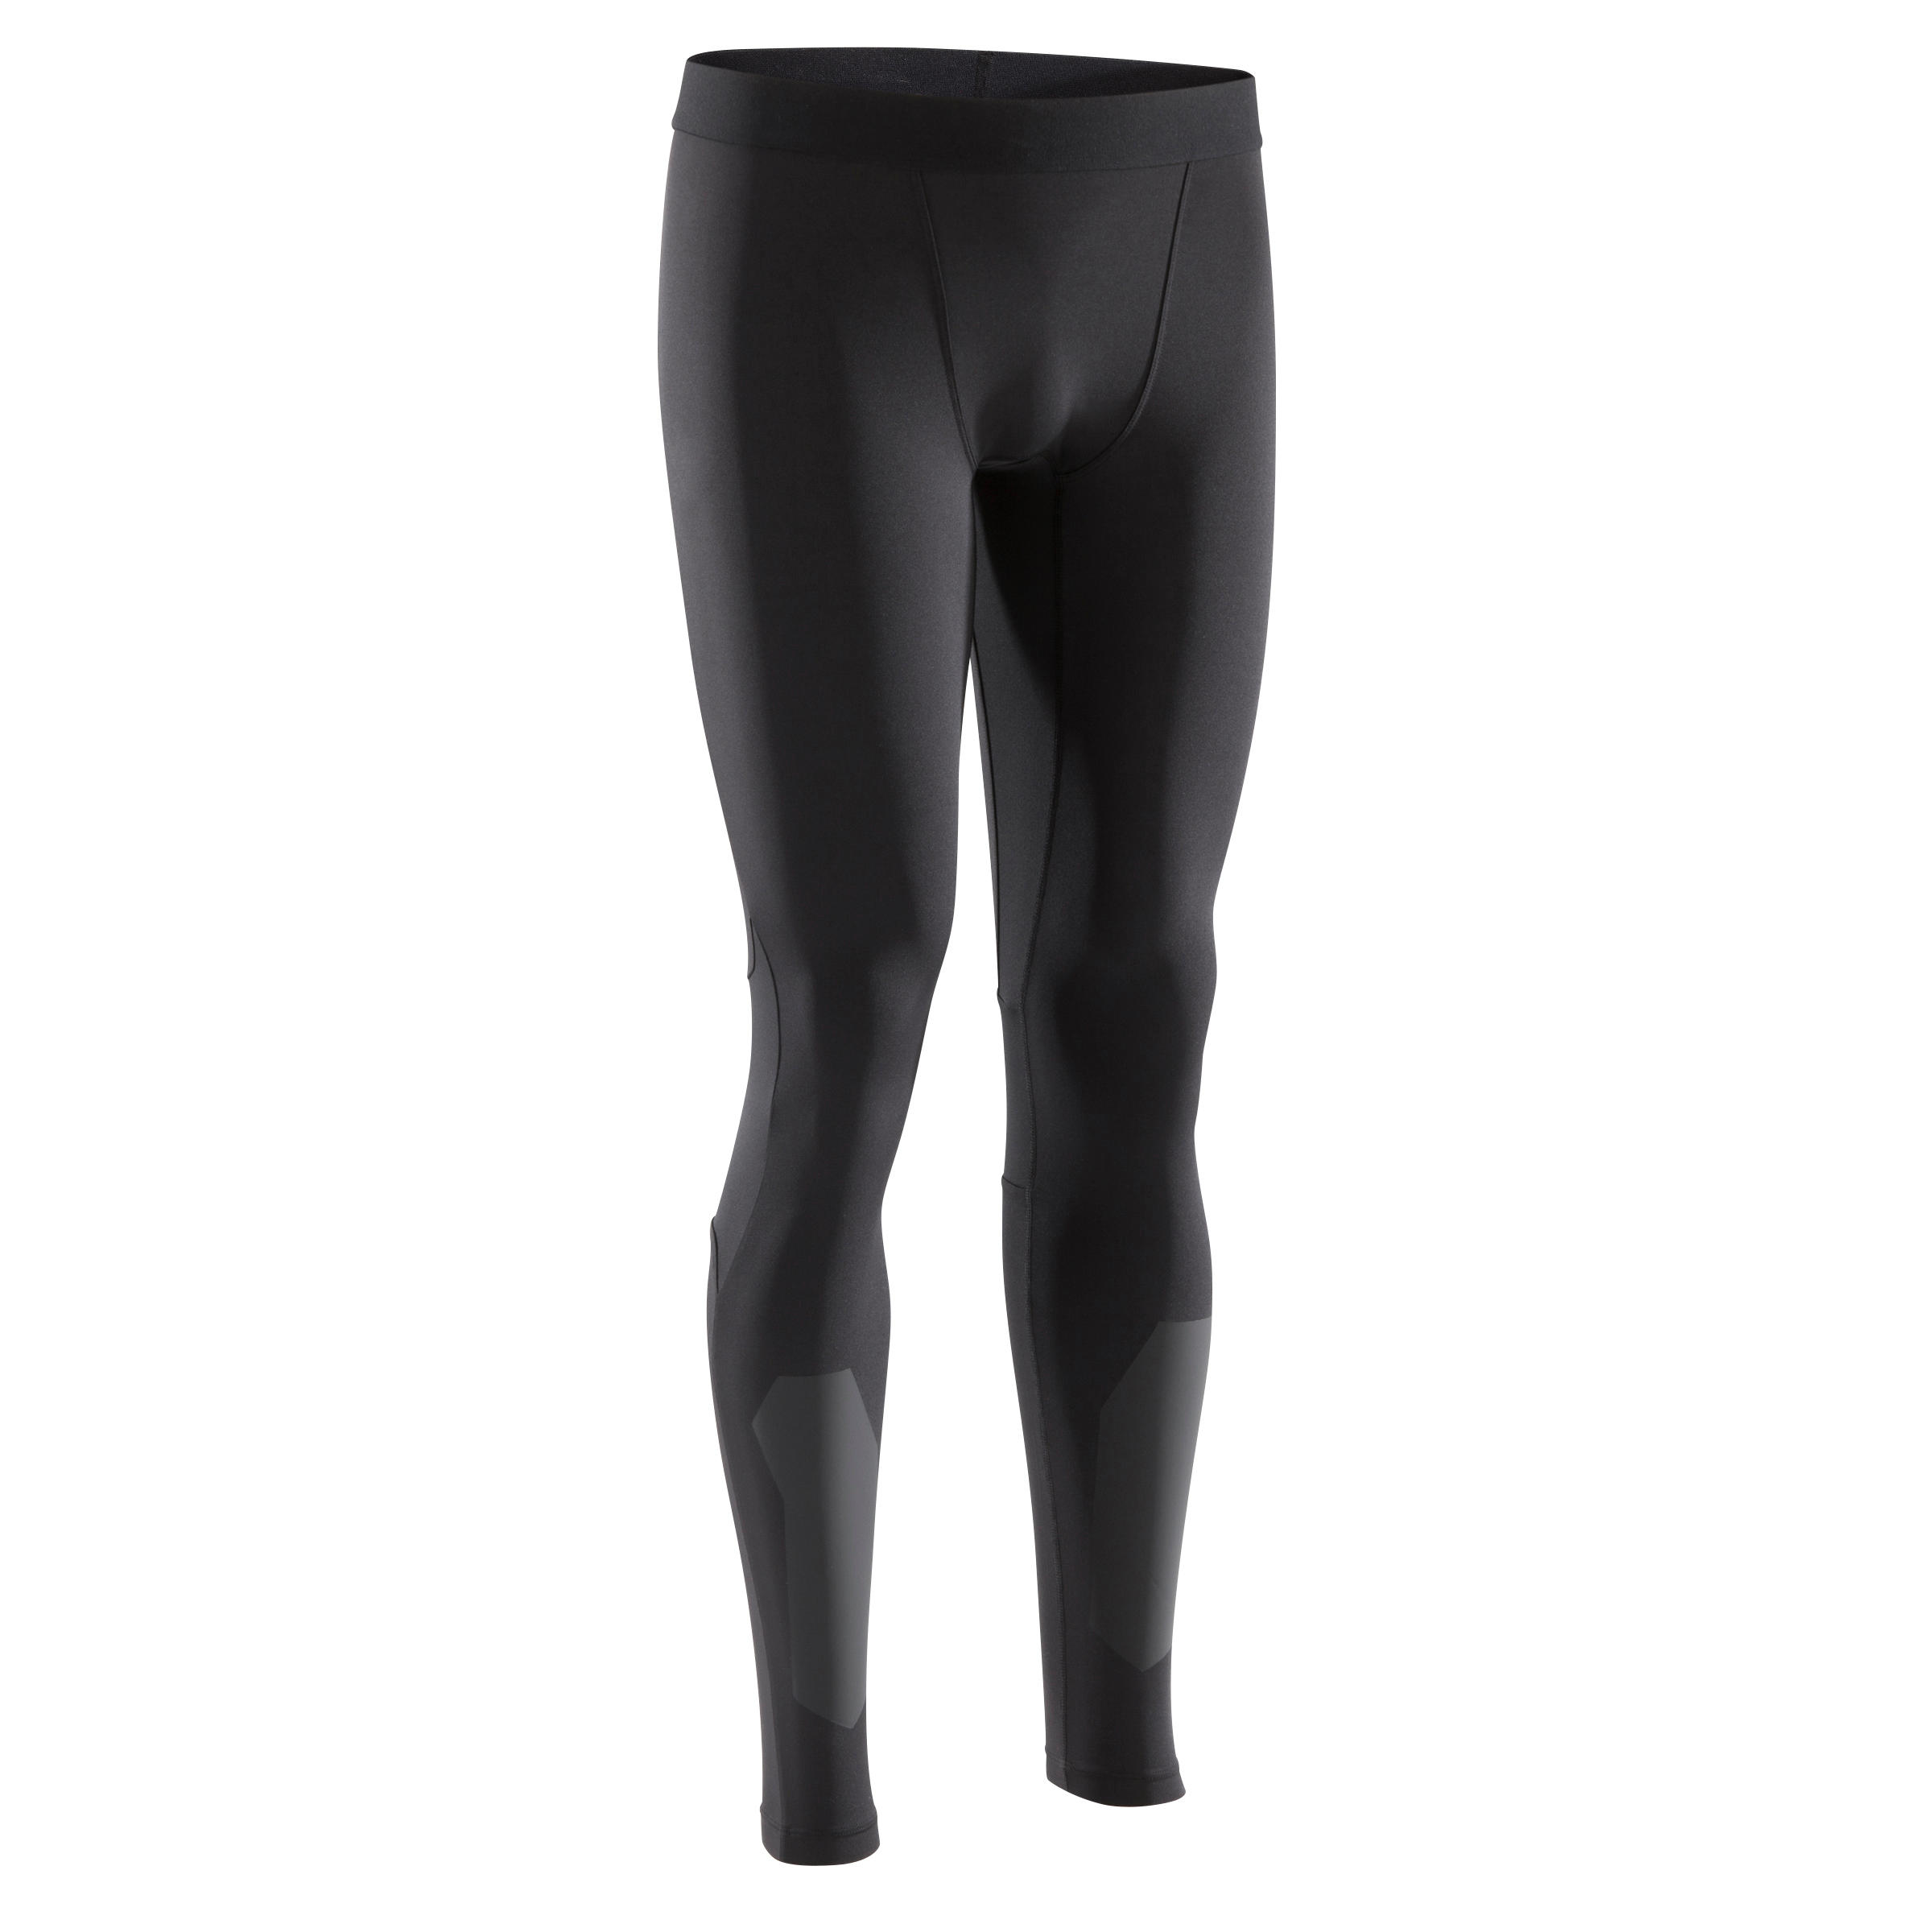 500 Cross-Training Leggings - Black